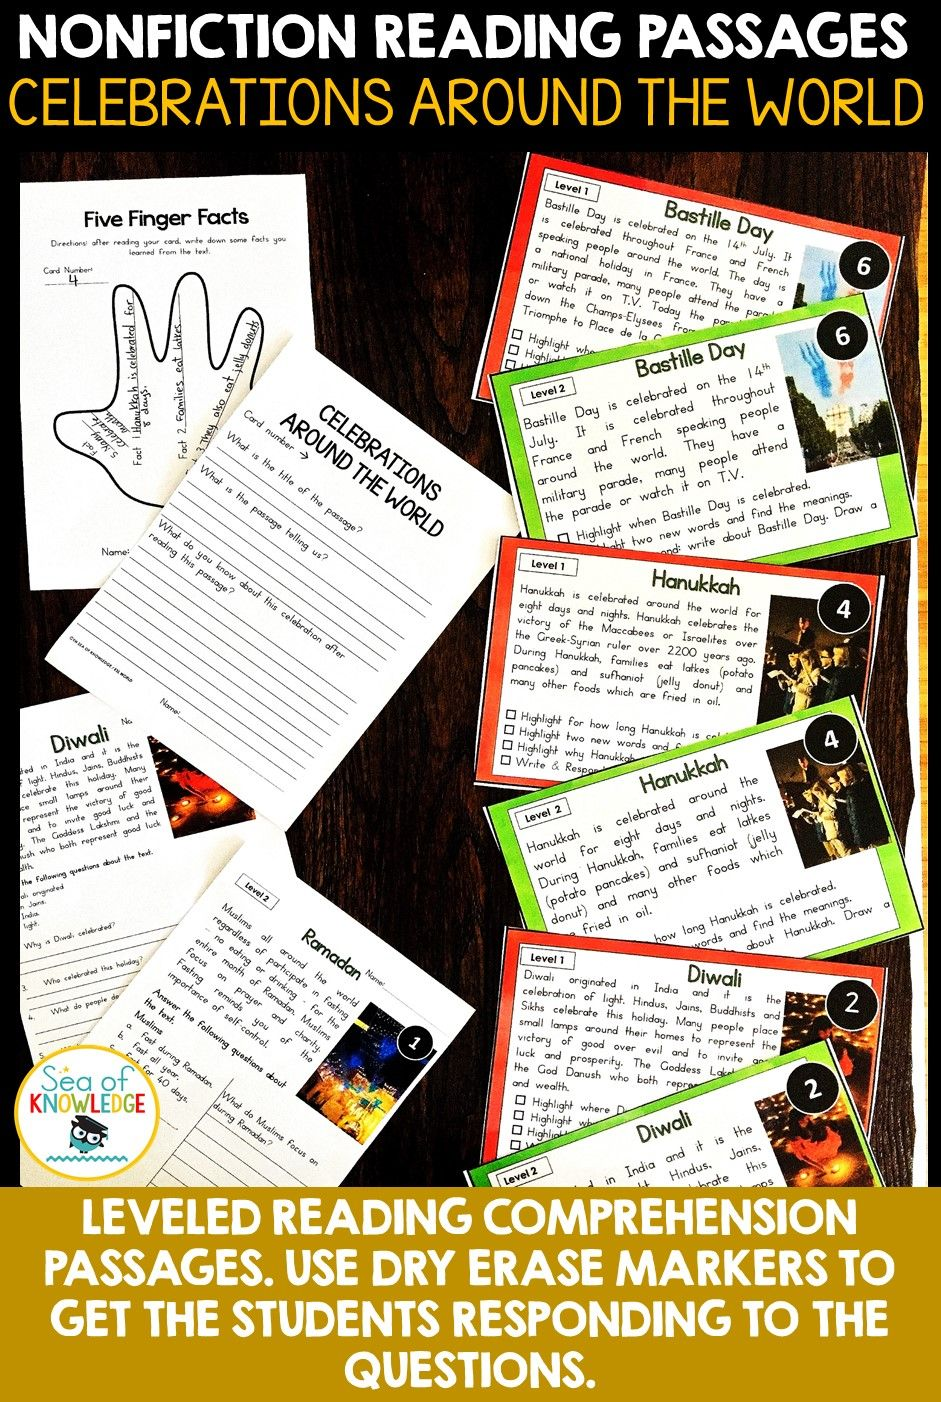 These Nonfiction Texts Will Engage Every Student In Your Class No Matter Their Reading Leve Nonfiction Reading Passages Celebration Around The World Nonfiction [ 1402 x 941 Pixel ]